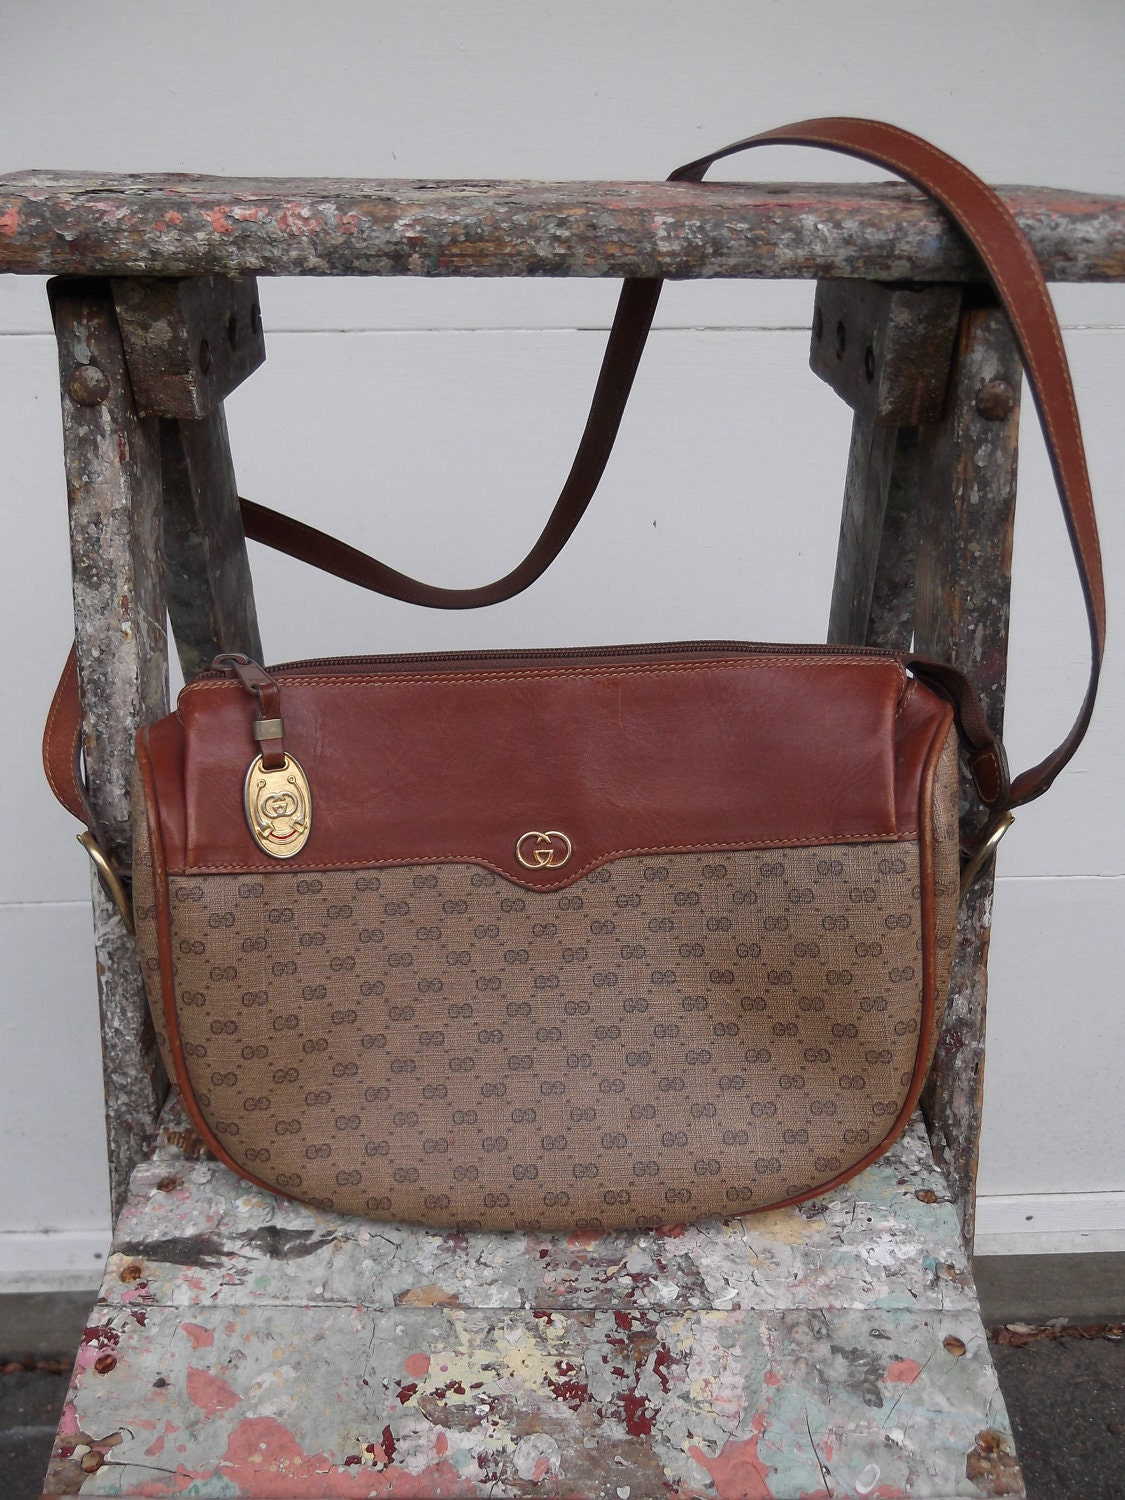 54a6d9289e Gucci Handbags Brown Leather. Olivia Wilde With A Casual Gucci ...